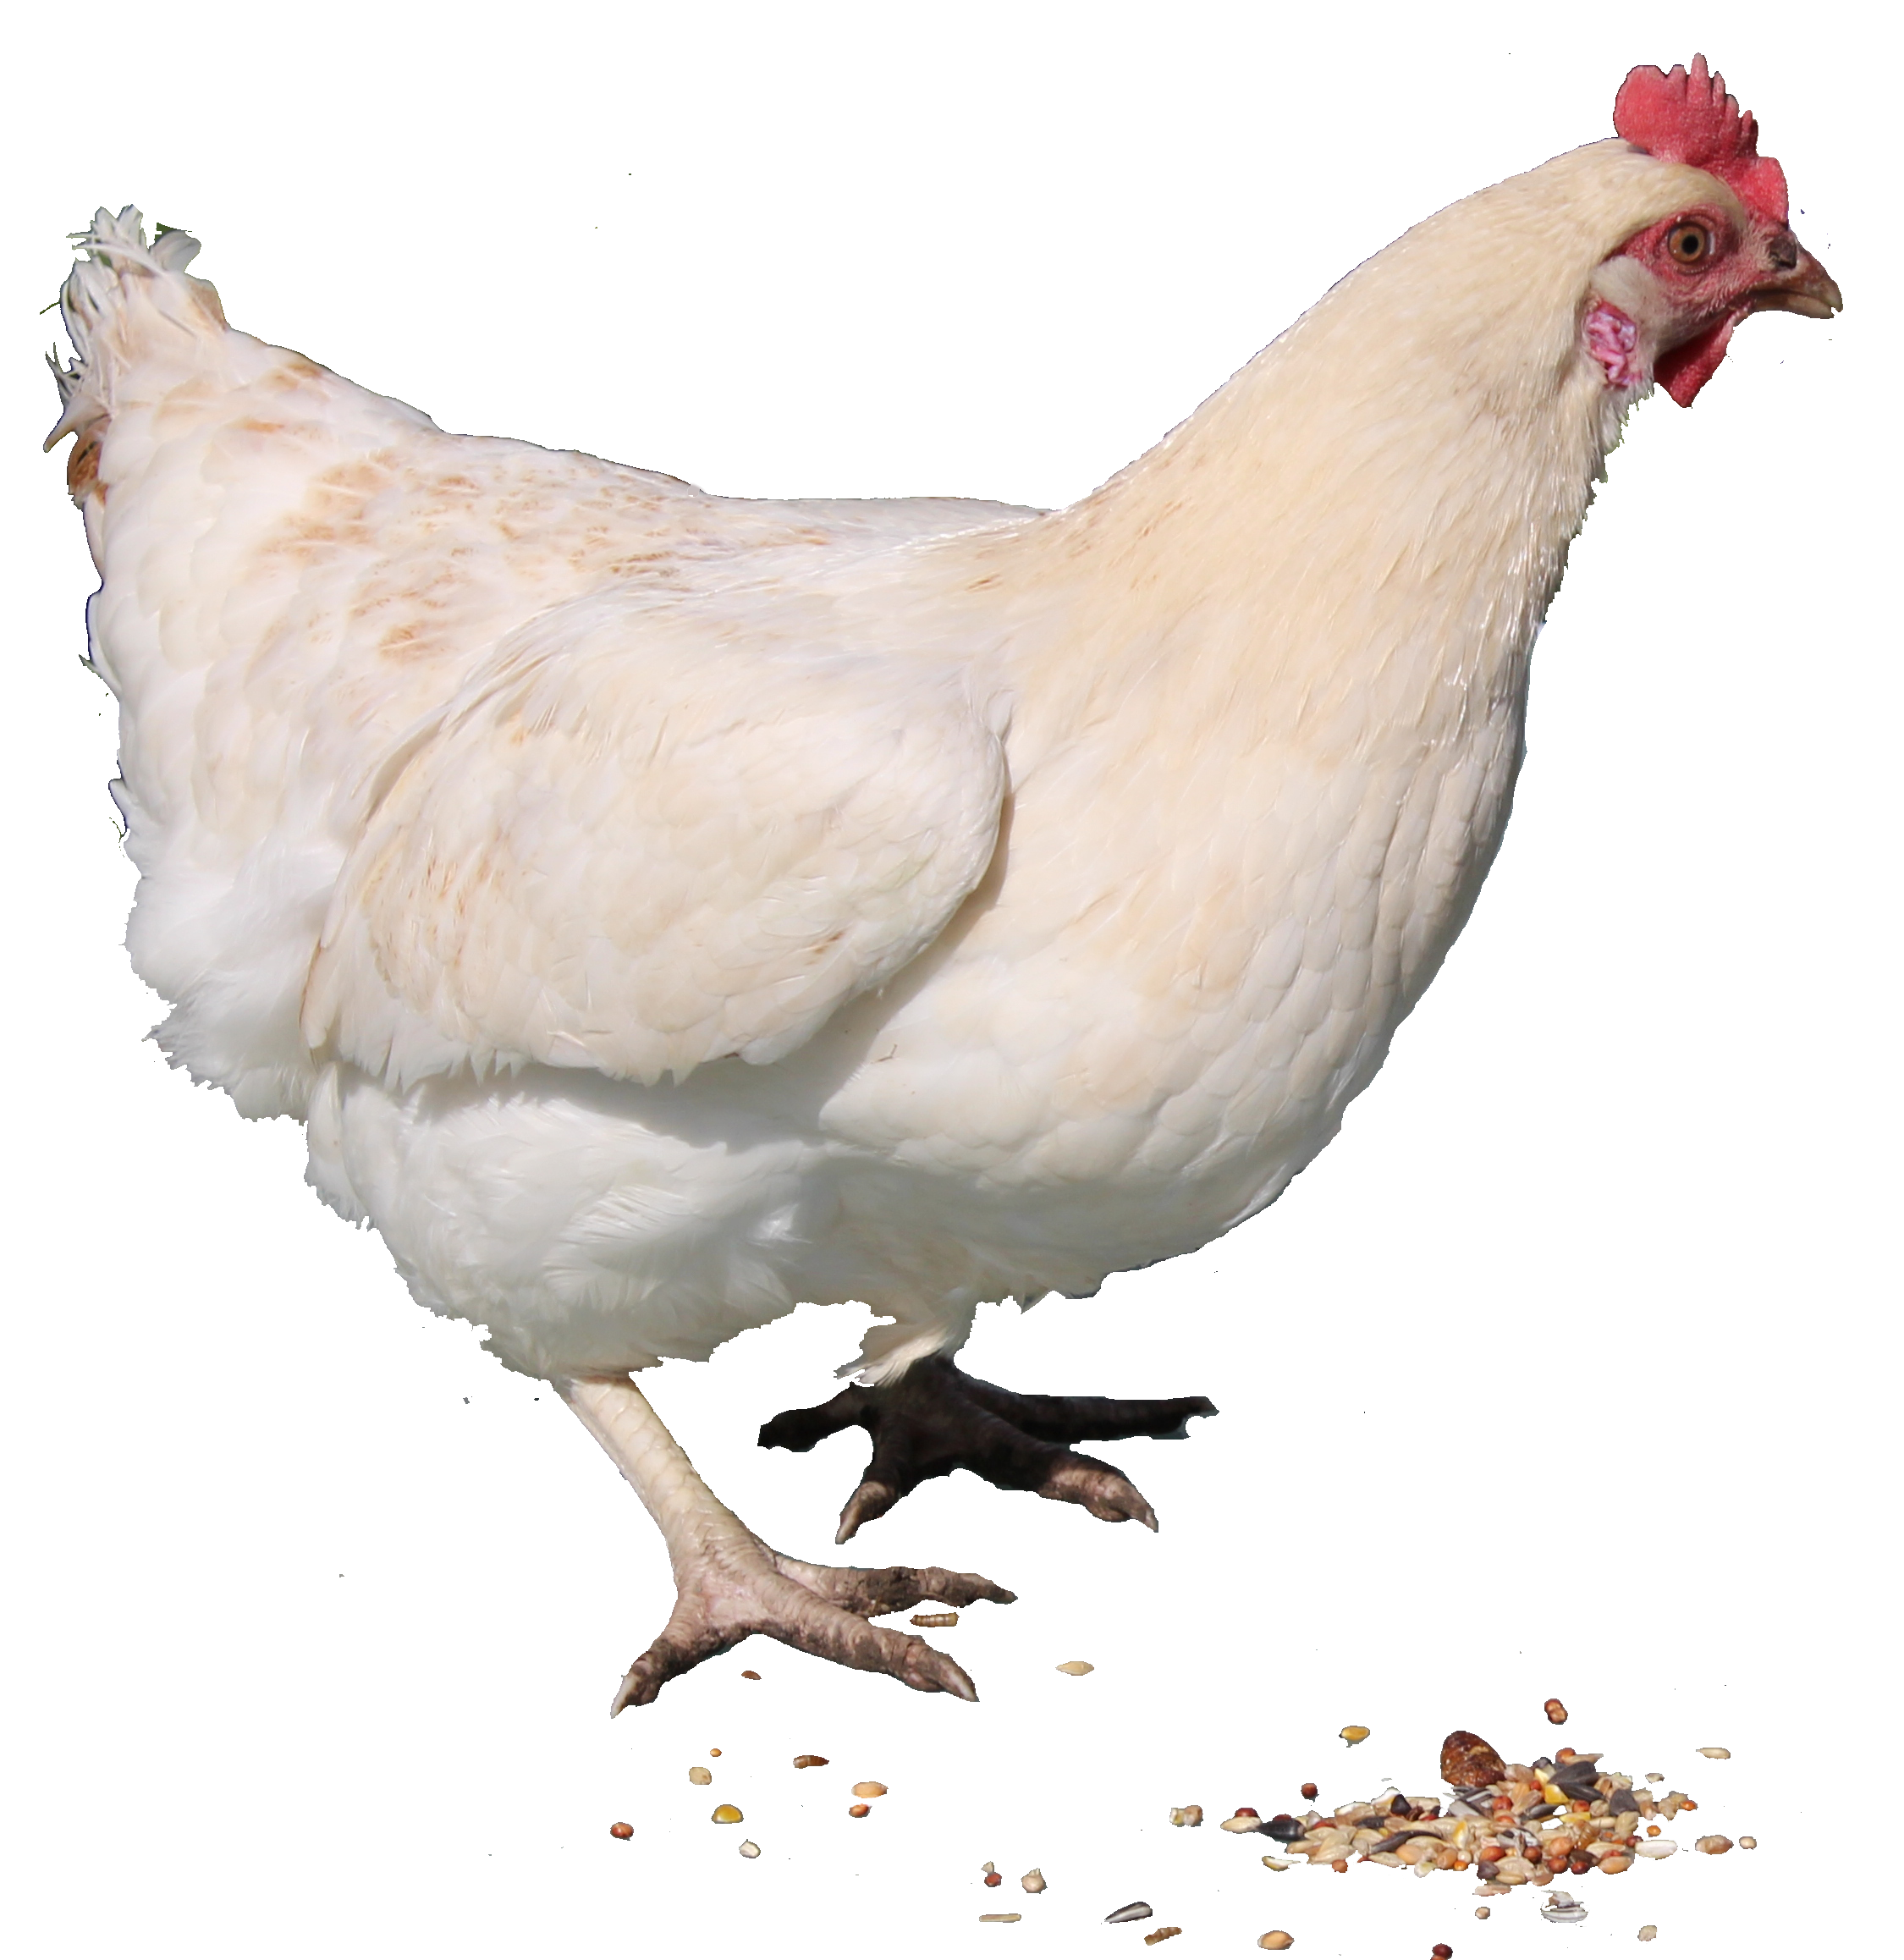 White Chicken Png image #40285